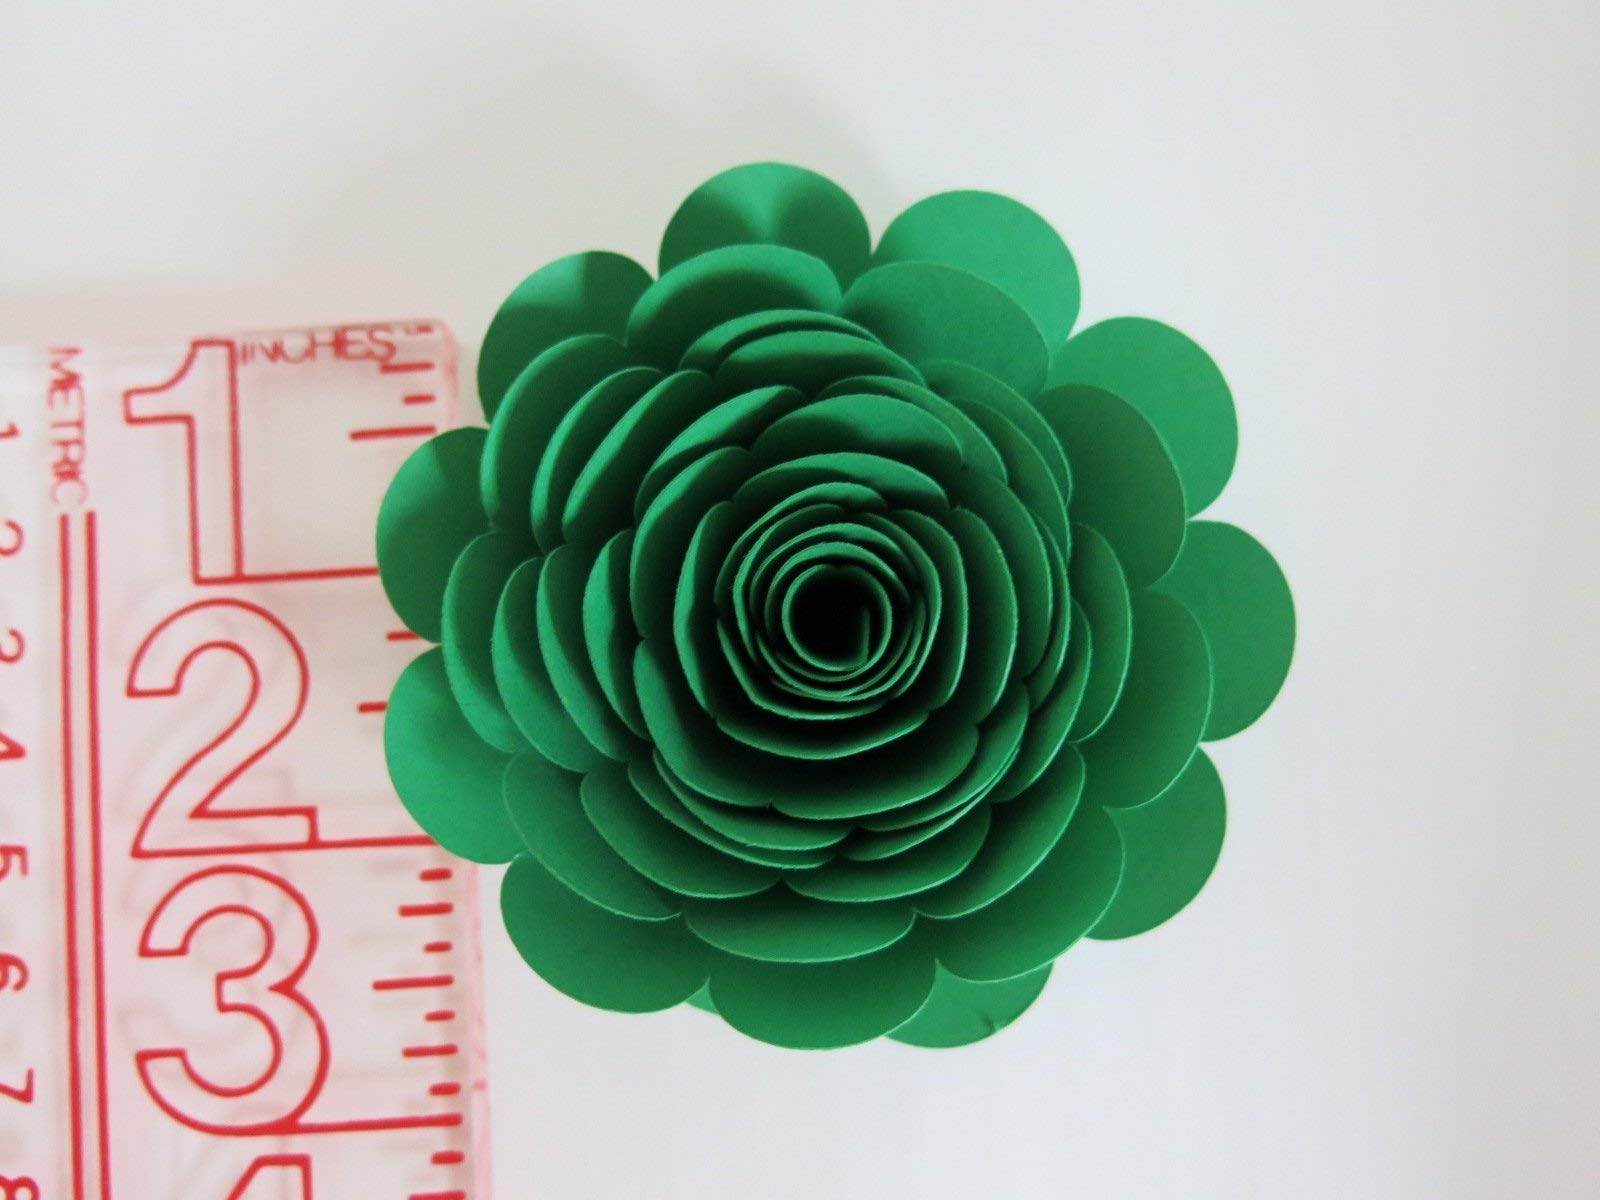 Mardi-Gras-Theme-Party-Decorations-Set-of-6-Green-Purple-and-Yellow-3-Roses-Handmade-Paper-Flowers-Always-In-Blossom-Popular-Floral-Decor